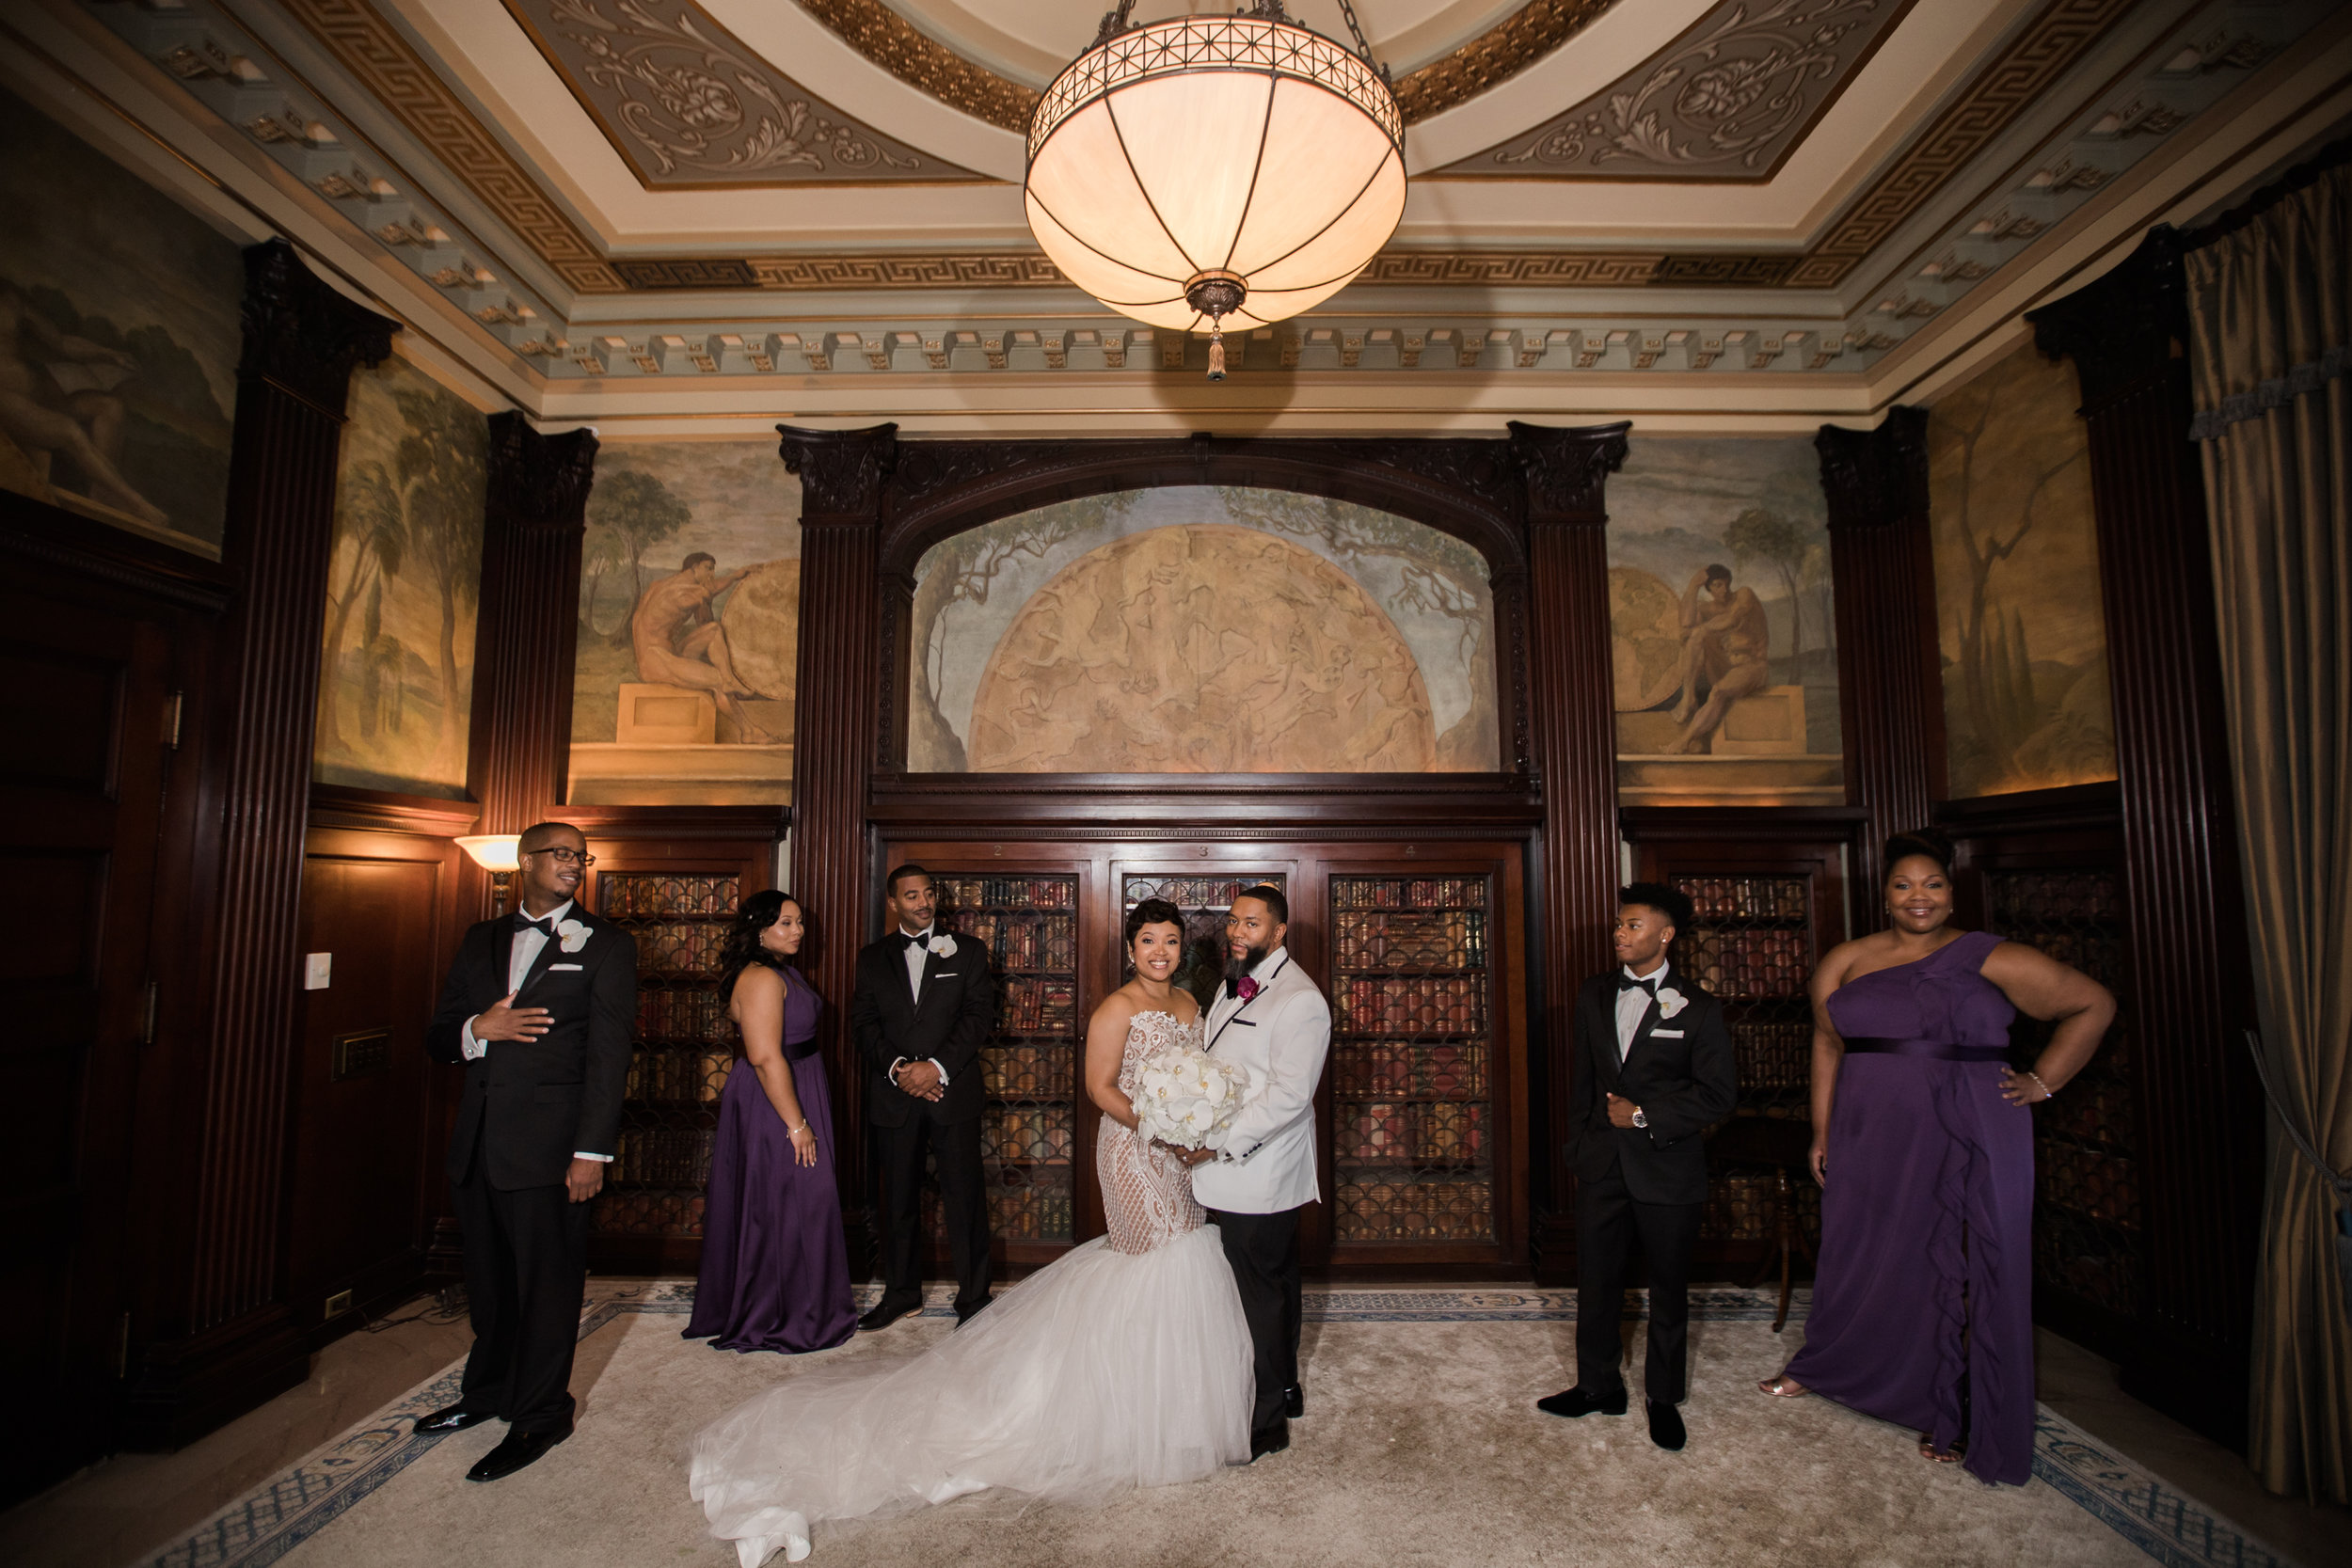 Best Classic Black Bride at The Grand Baltimore Maryland Husband and Wife Wedding Photographers Megapixels Media (62 of 98).jpg